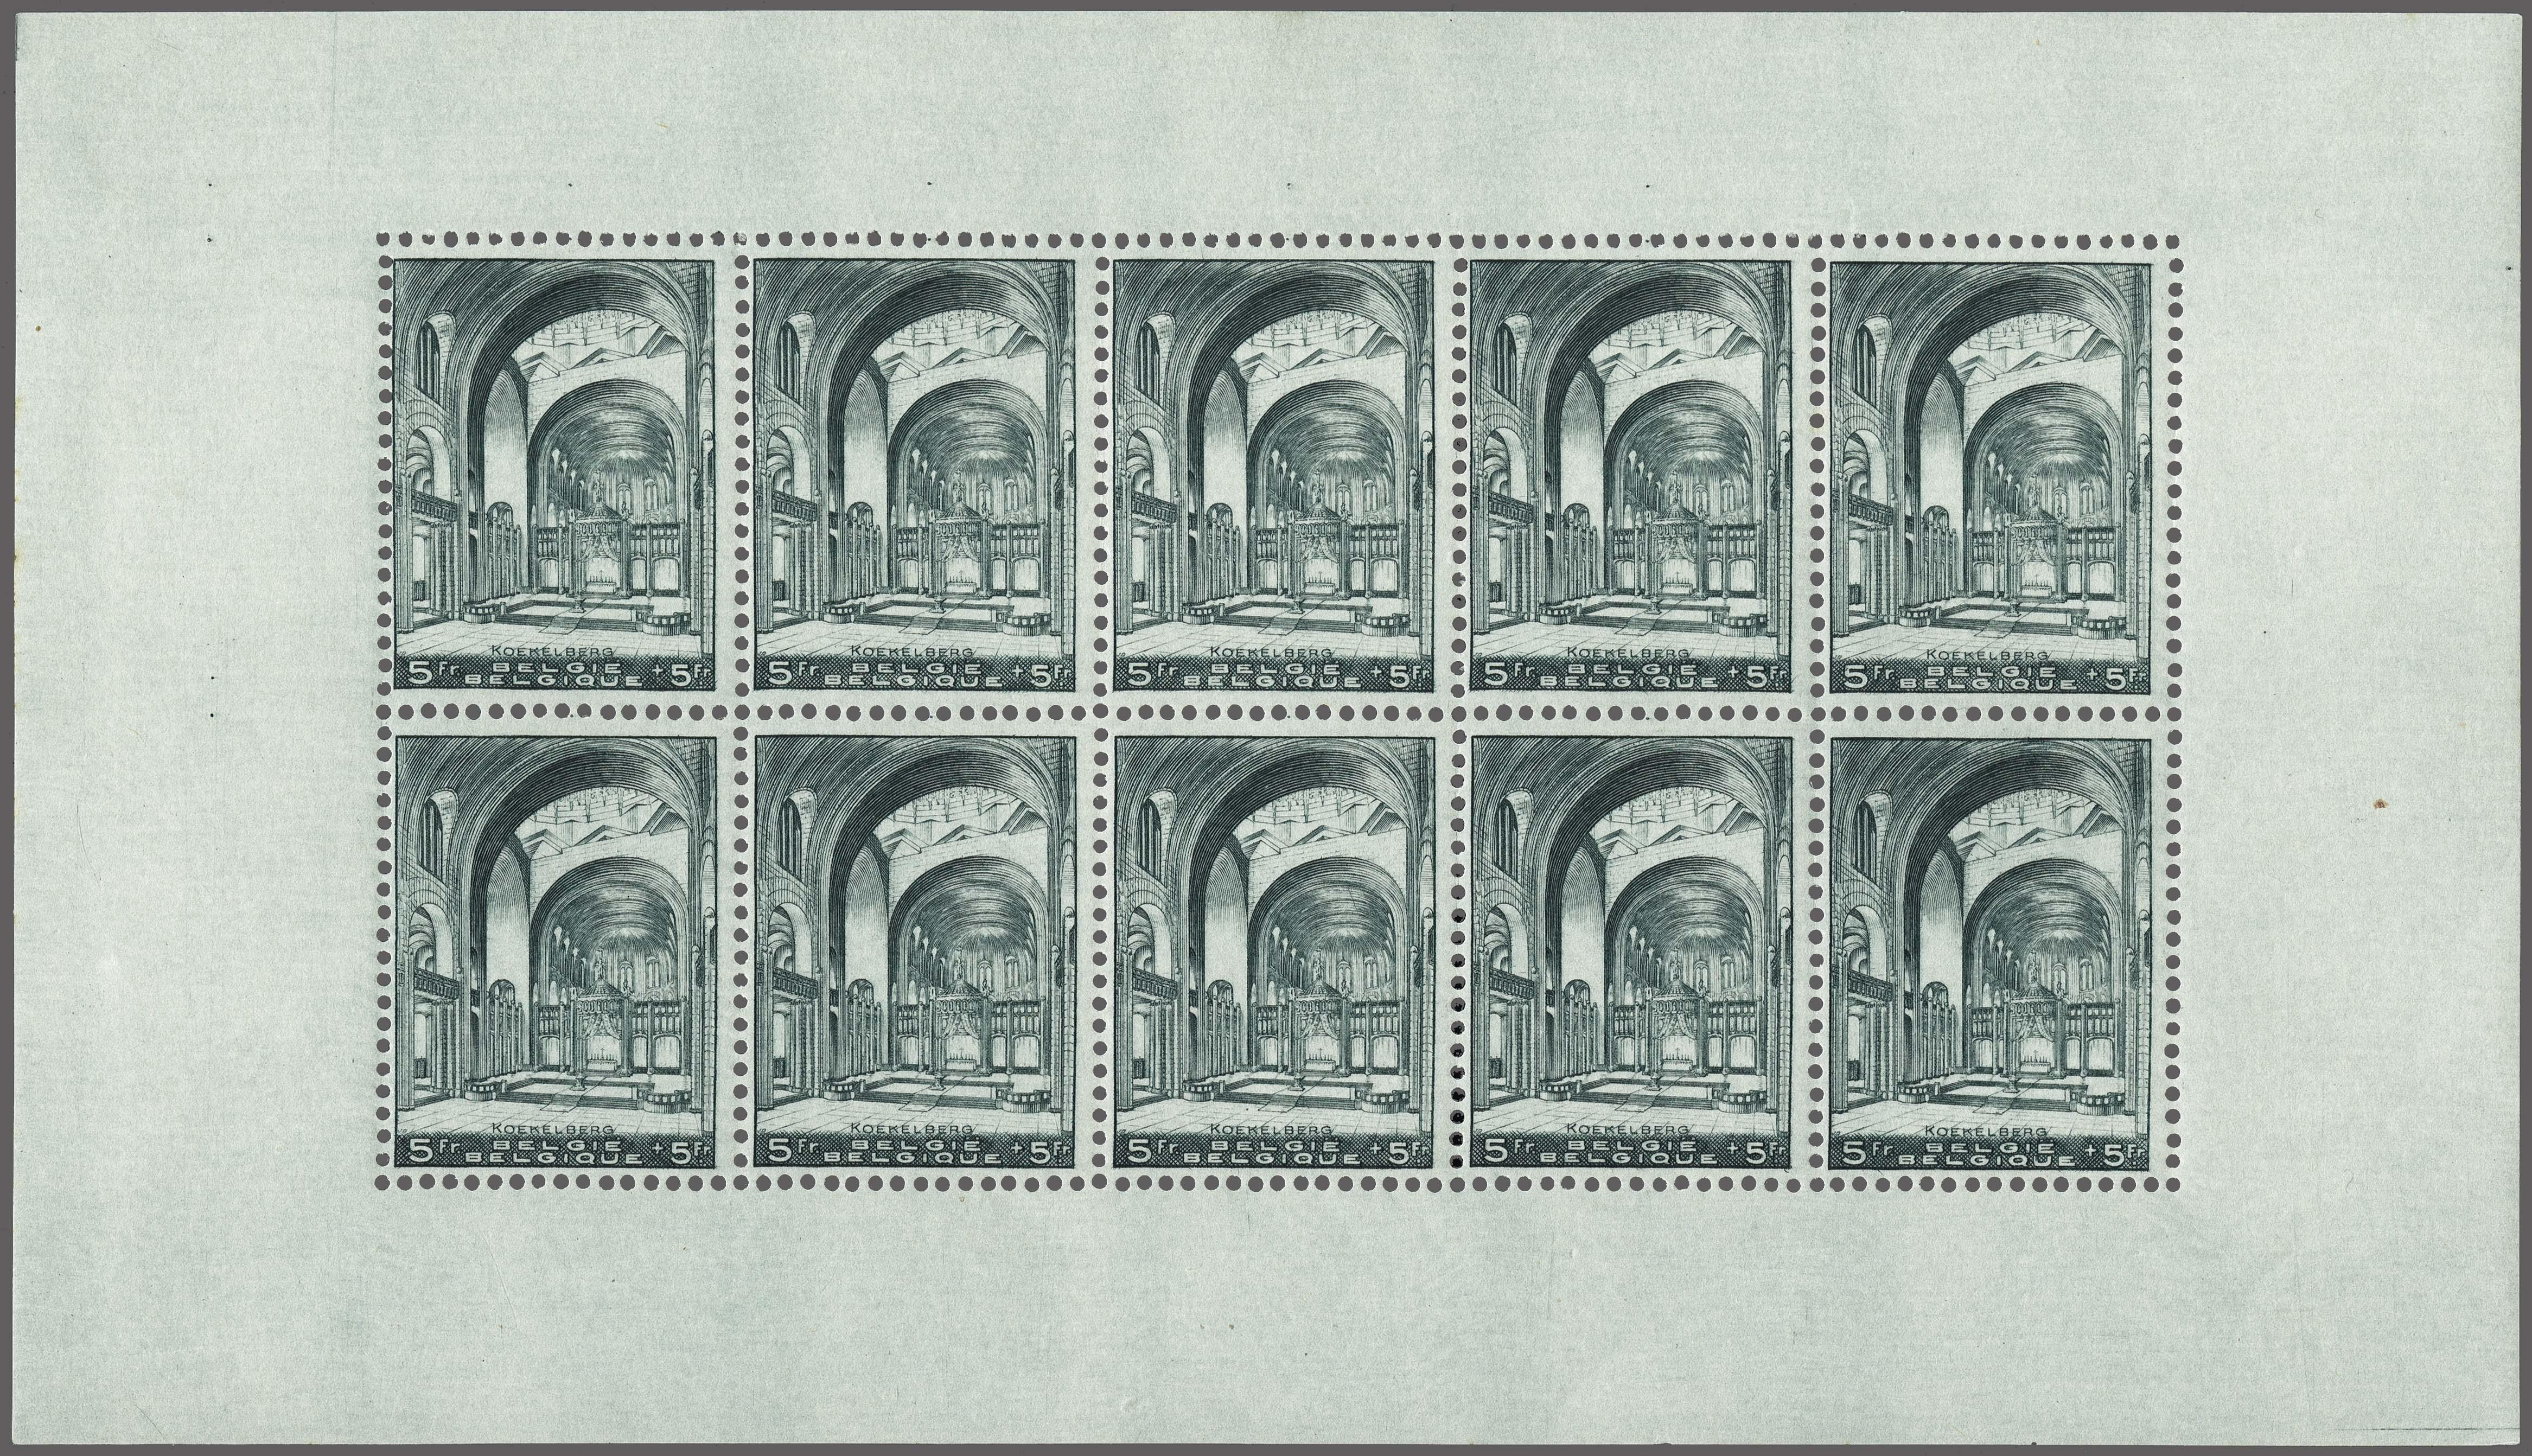 Lot 18 - Belgium and former colonies Belgium -  Corinphila Veilingen Auction 250-253 - Day 1 - Foreign countries